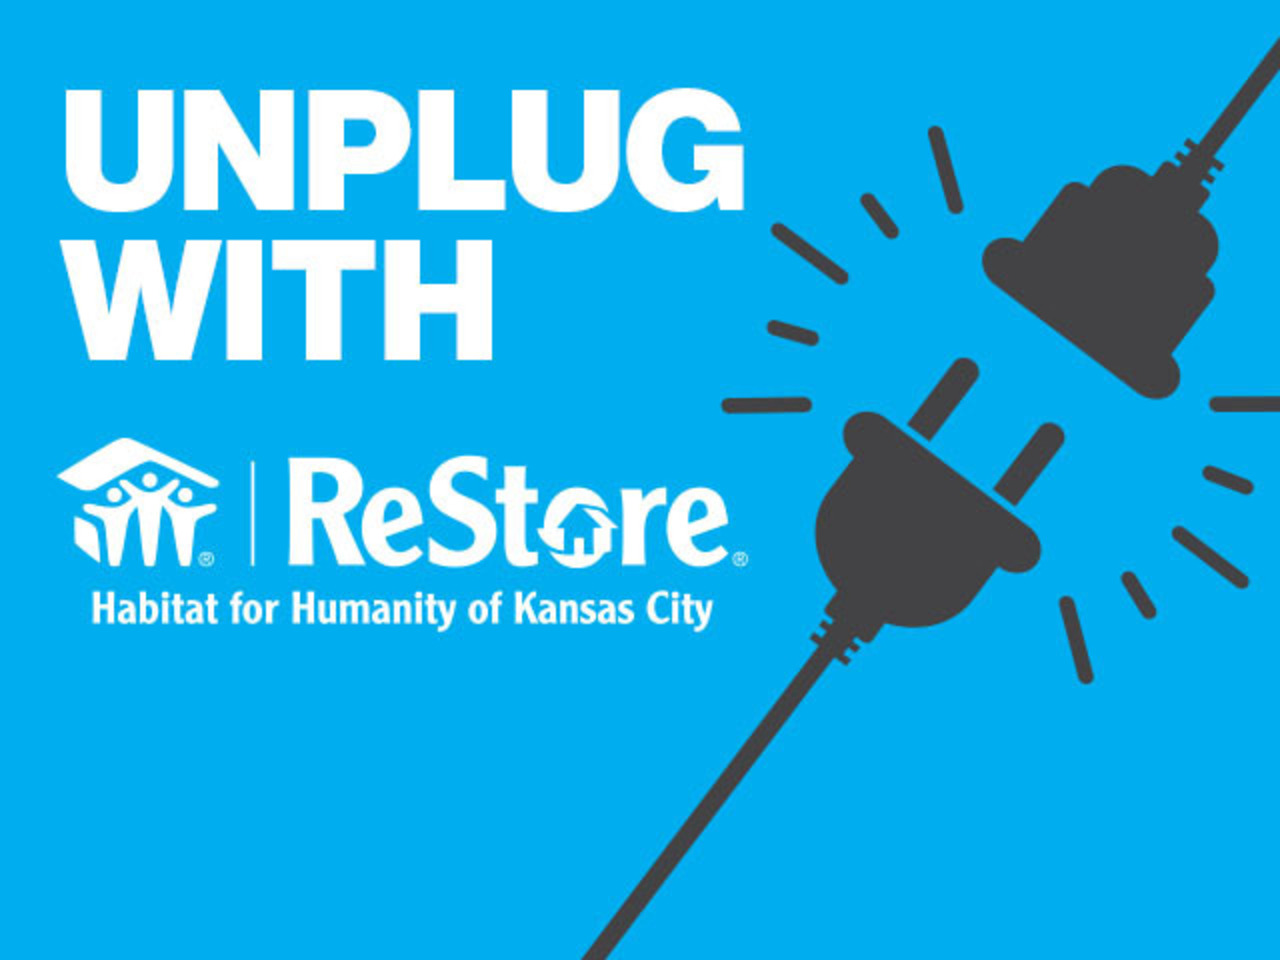 Unplug with ReStore